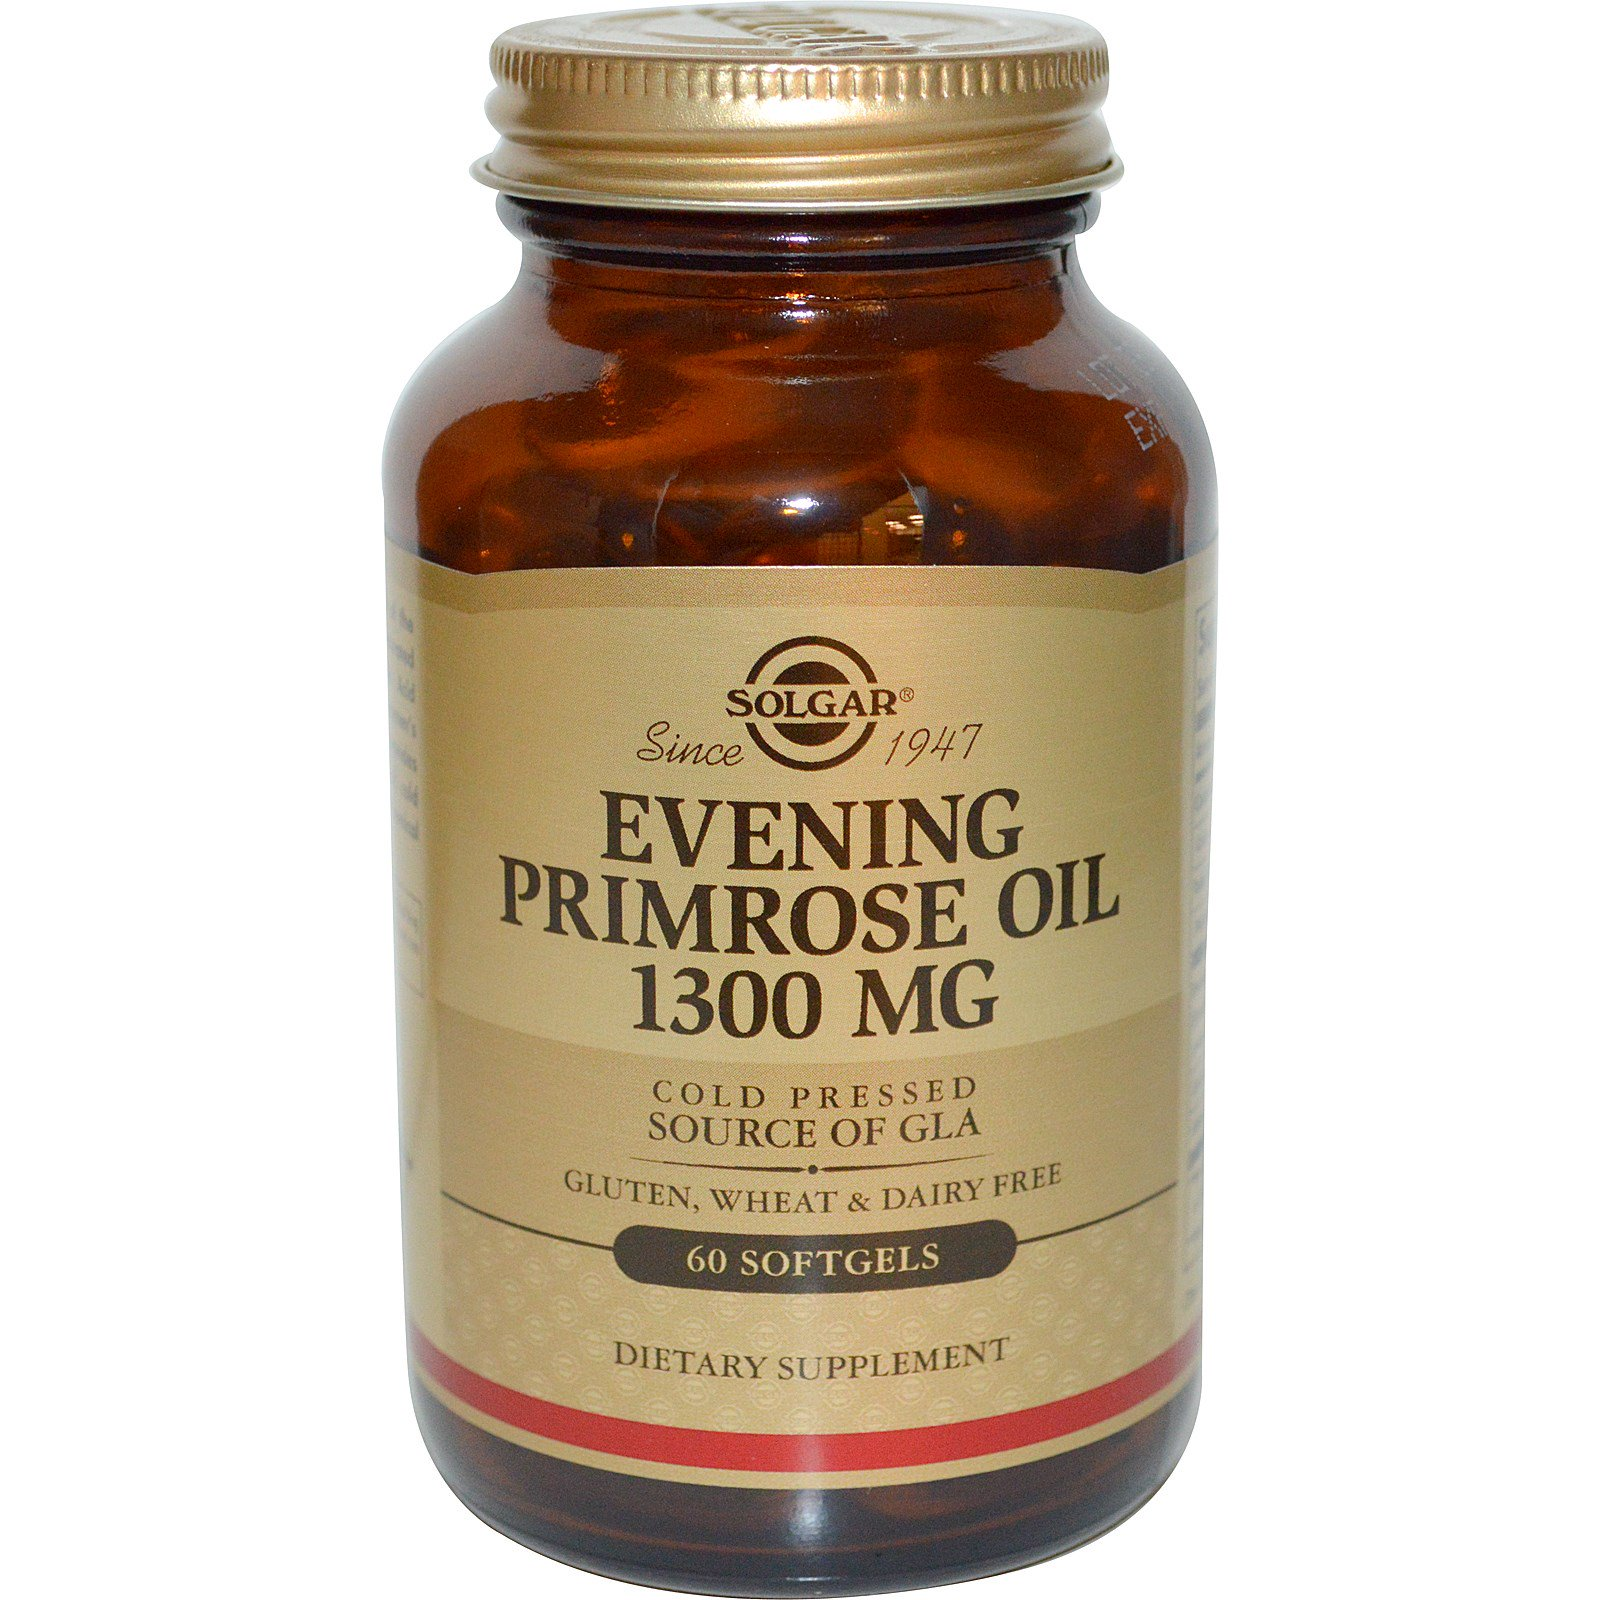 Evening primrose oil reviews